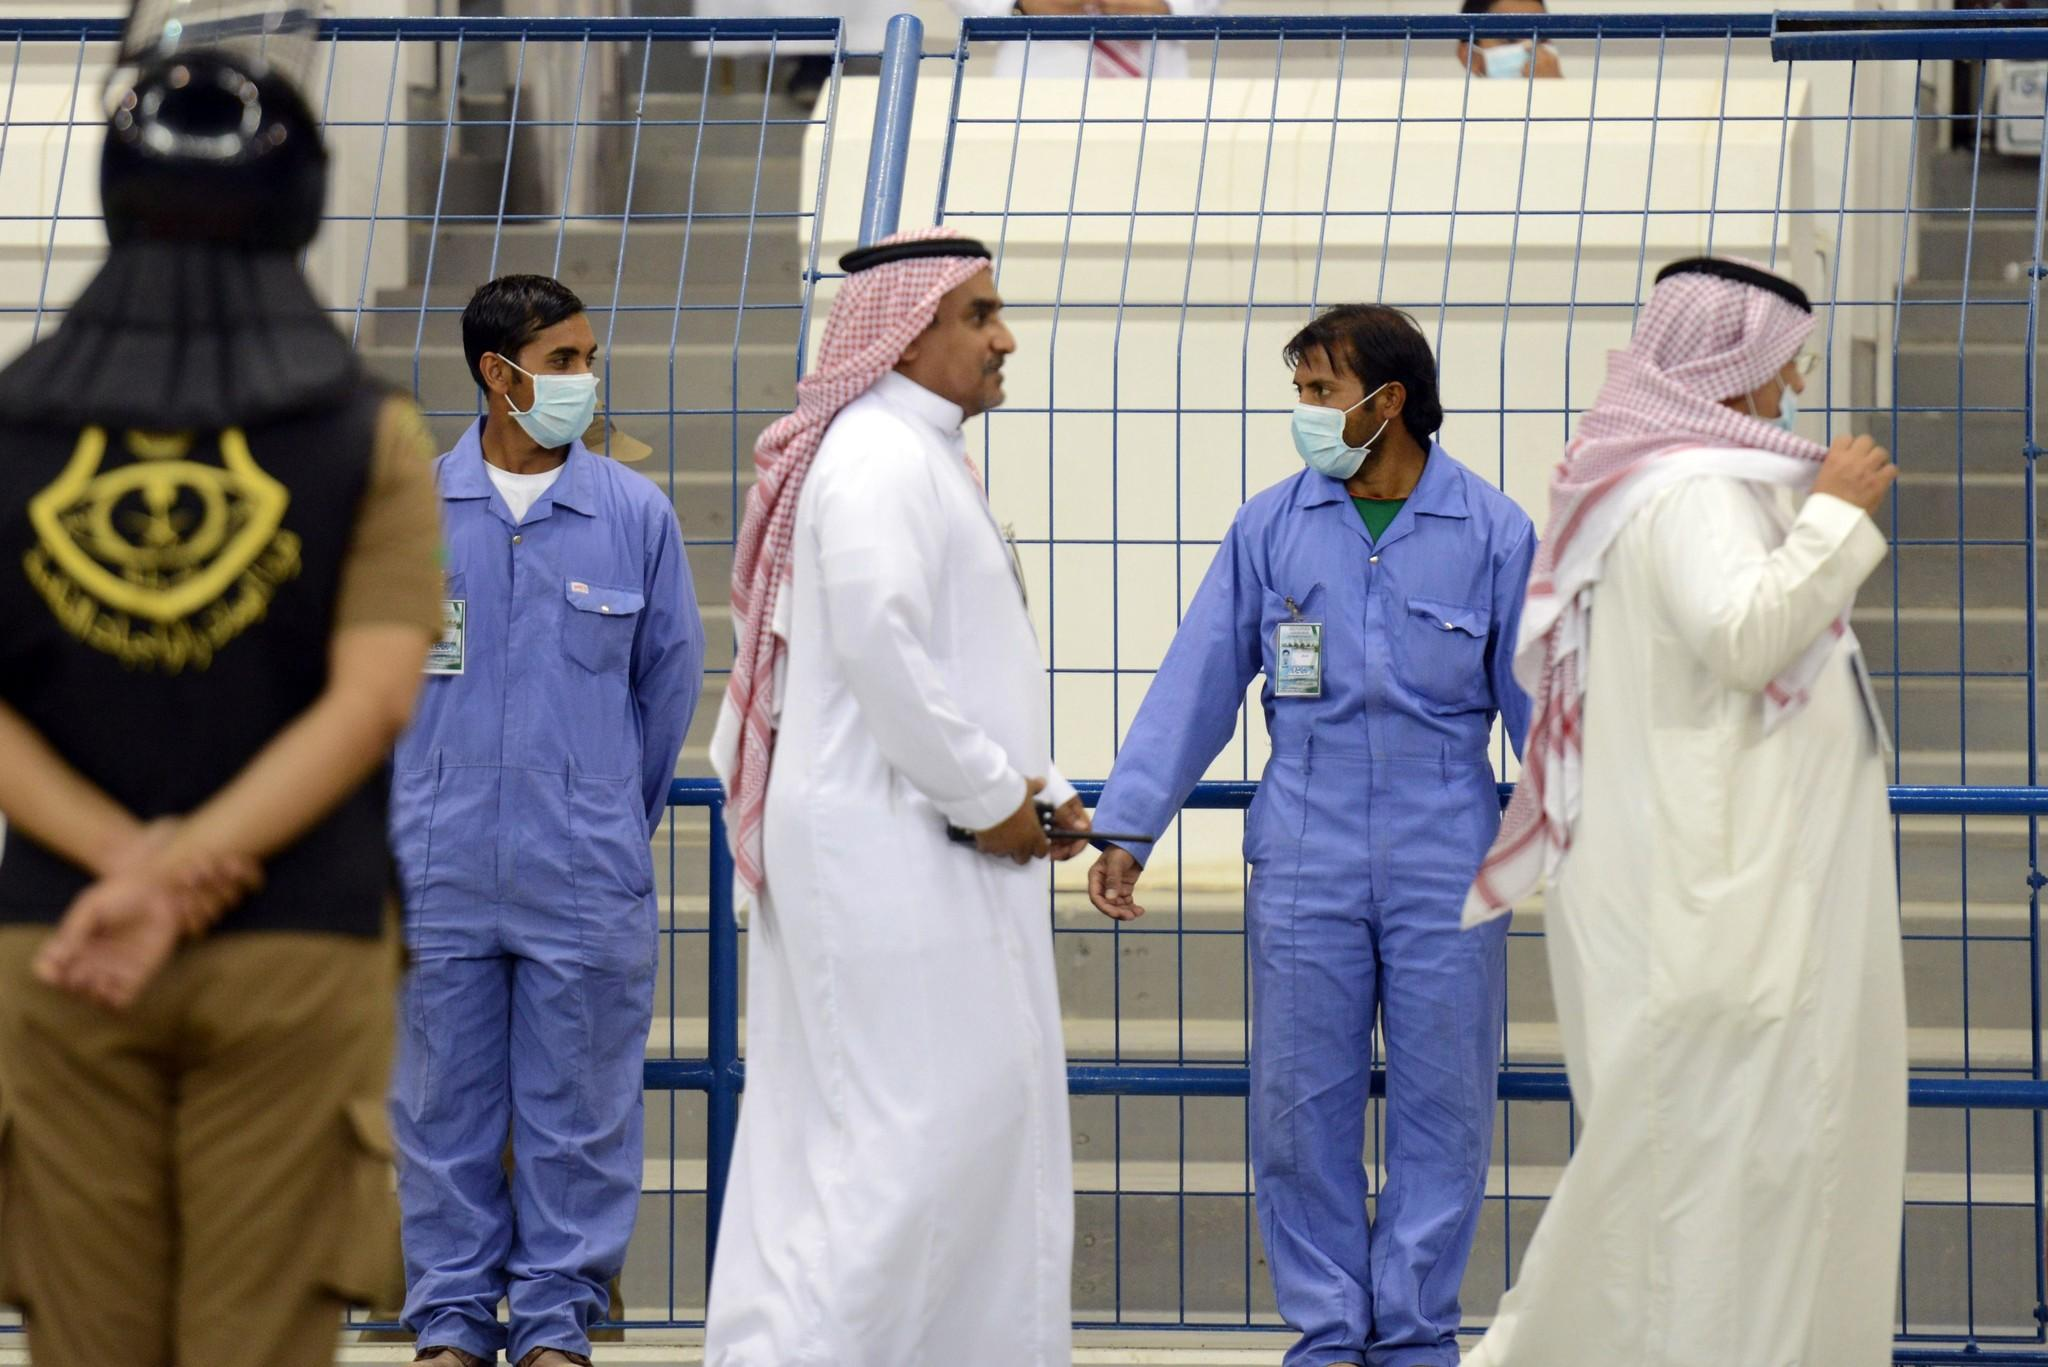 Asian workers wear mouth and nose masks while on duty during a football match at the King Fahad stadium in Riyadh.